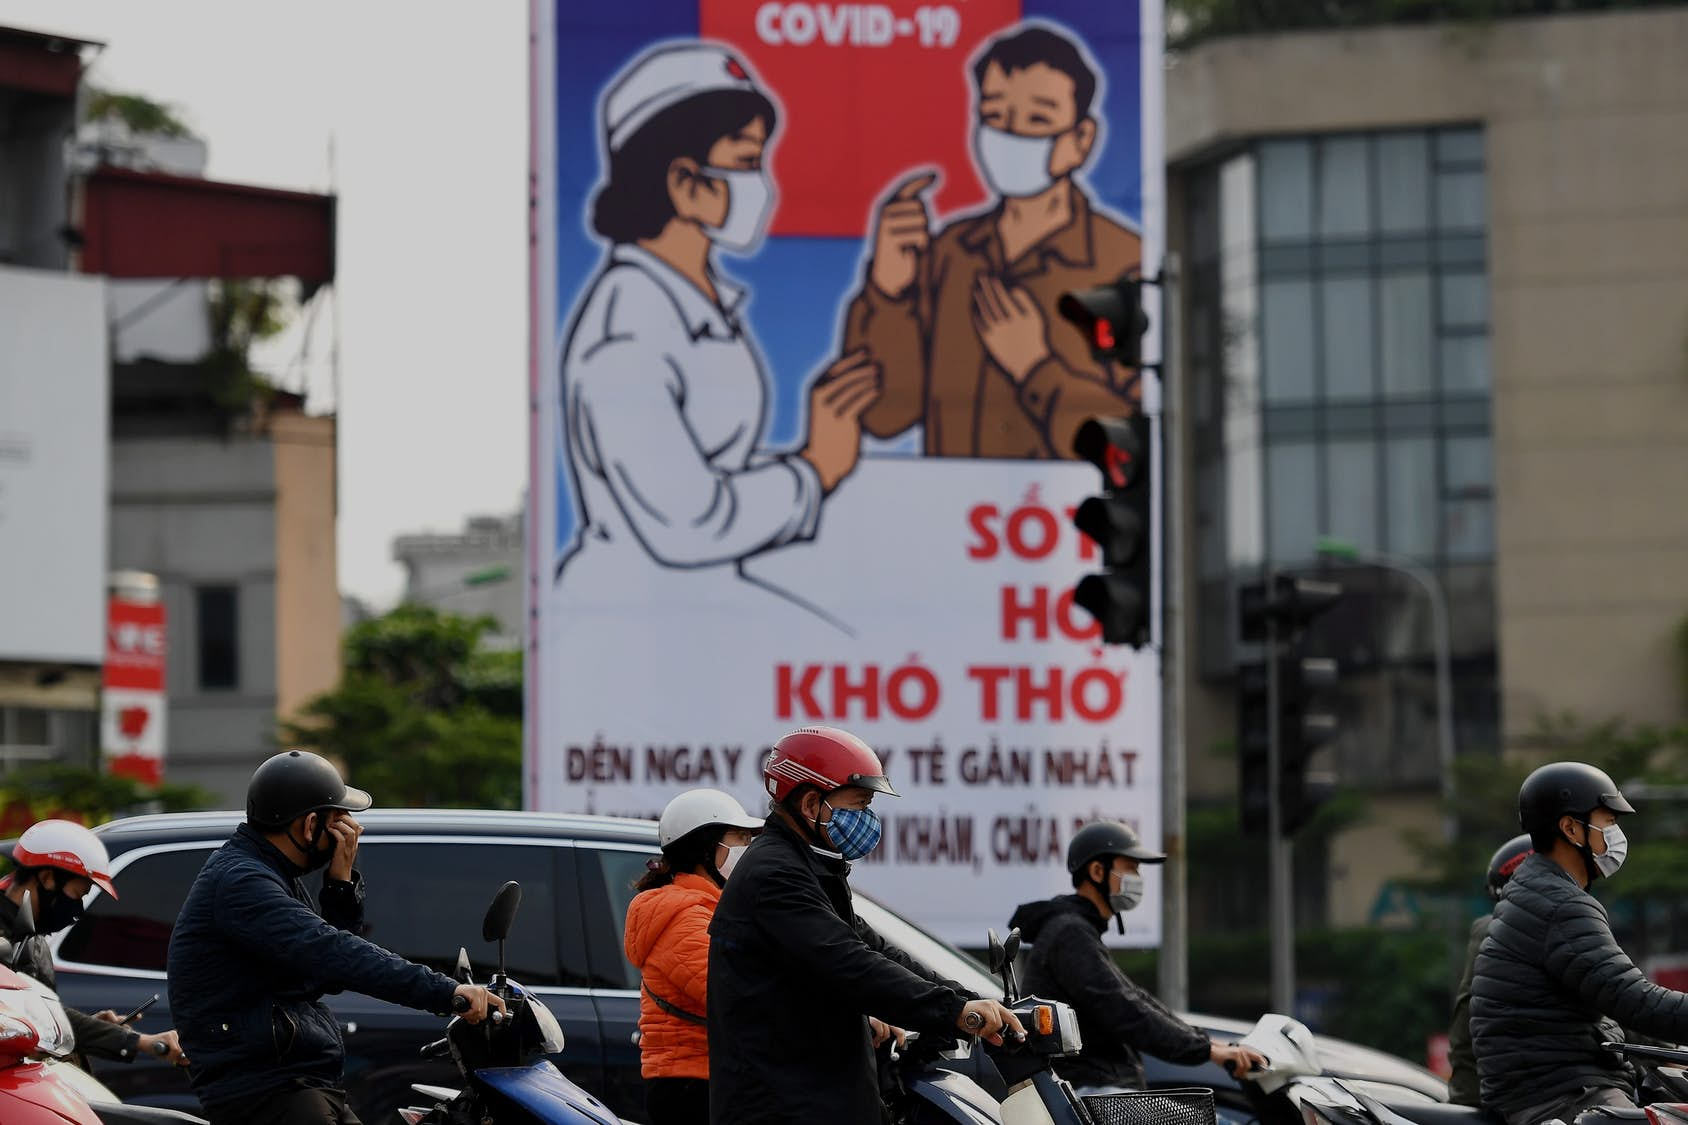 How a pair of travelers weathered the COVID-19 pandemic in Vietnam